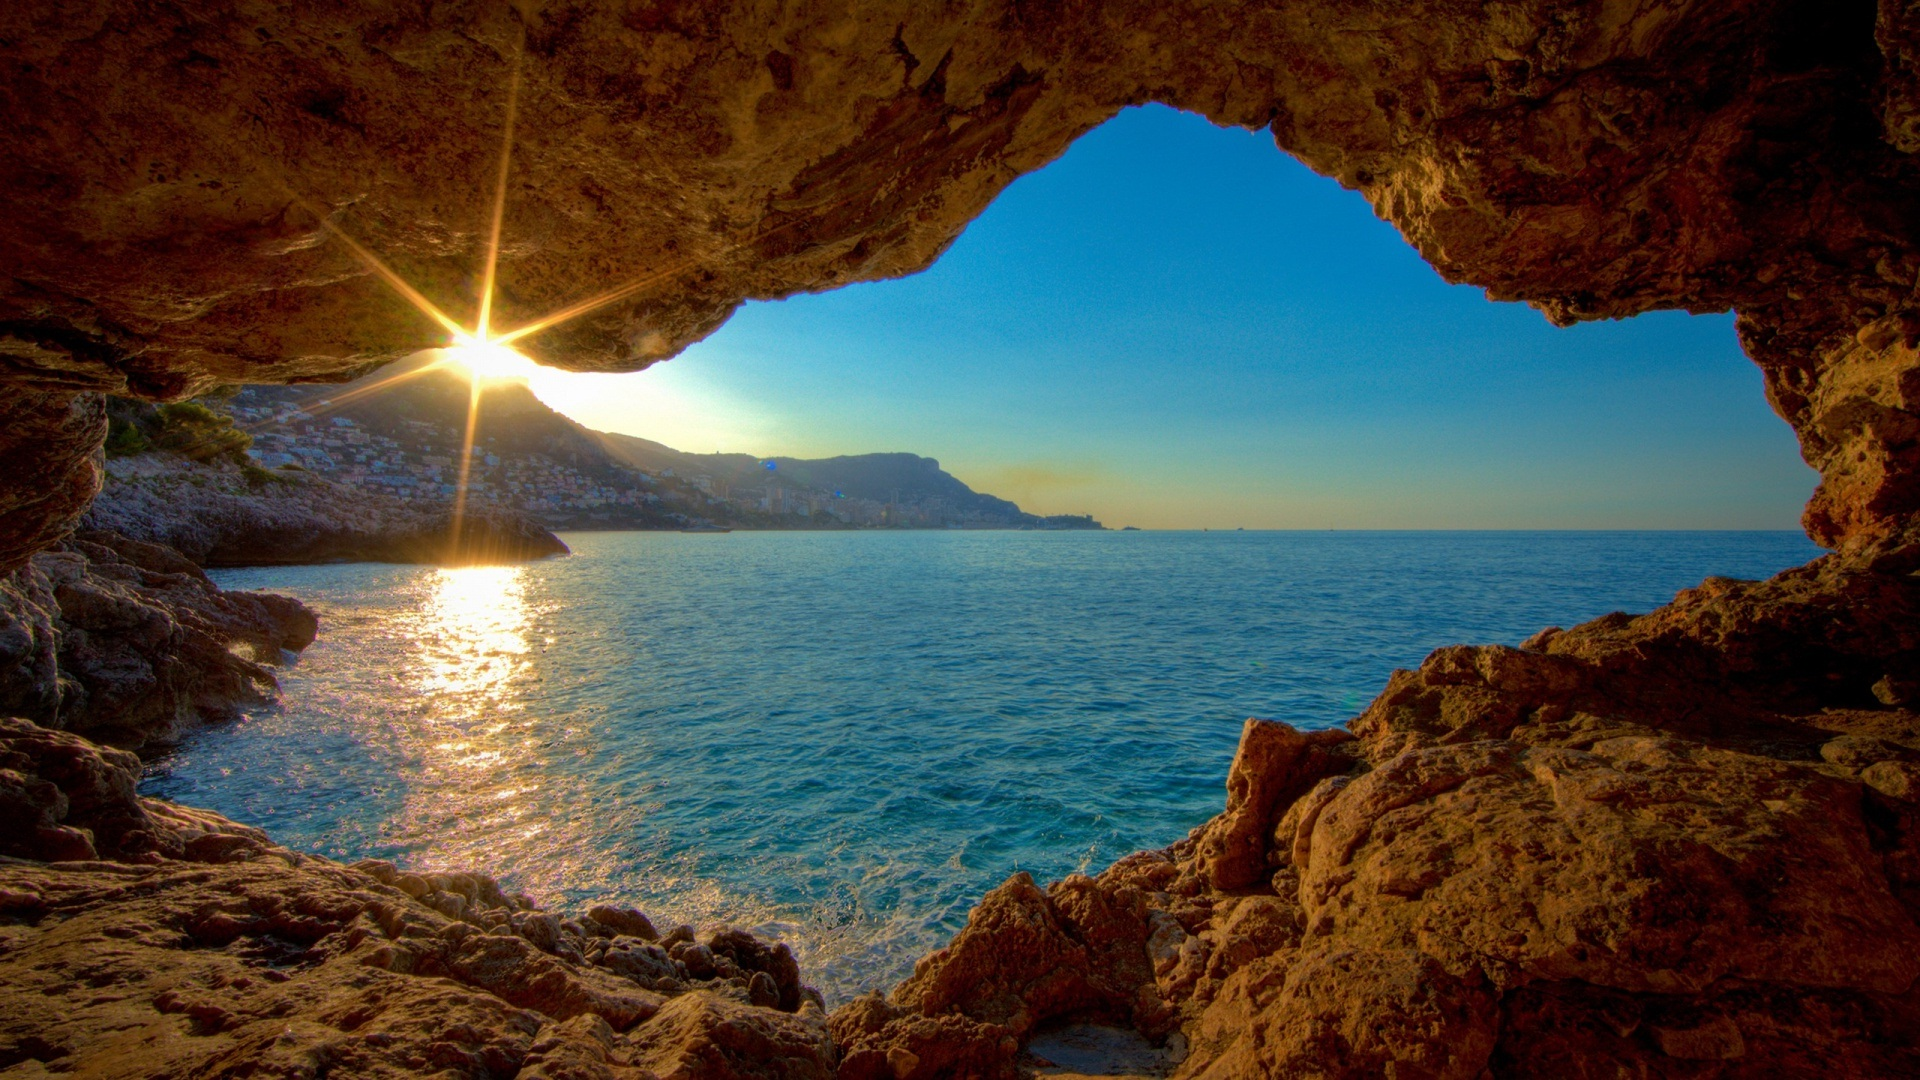 Gorgeous Wallpaper gorgeous cave wallpaper 36705 1920x1080 px ~ hdwallsource